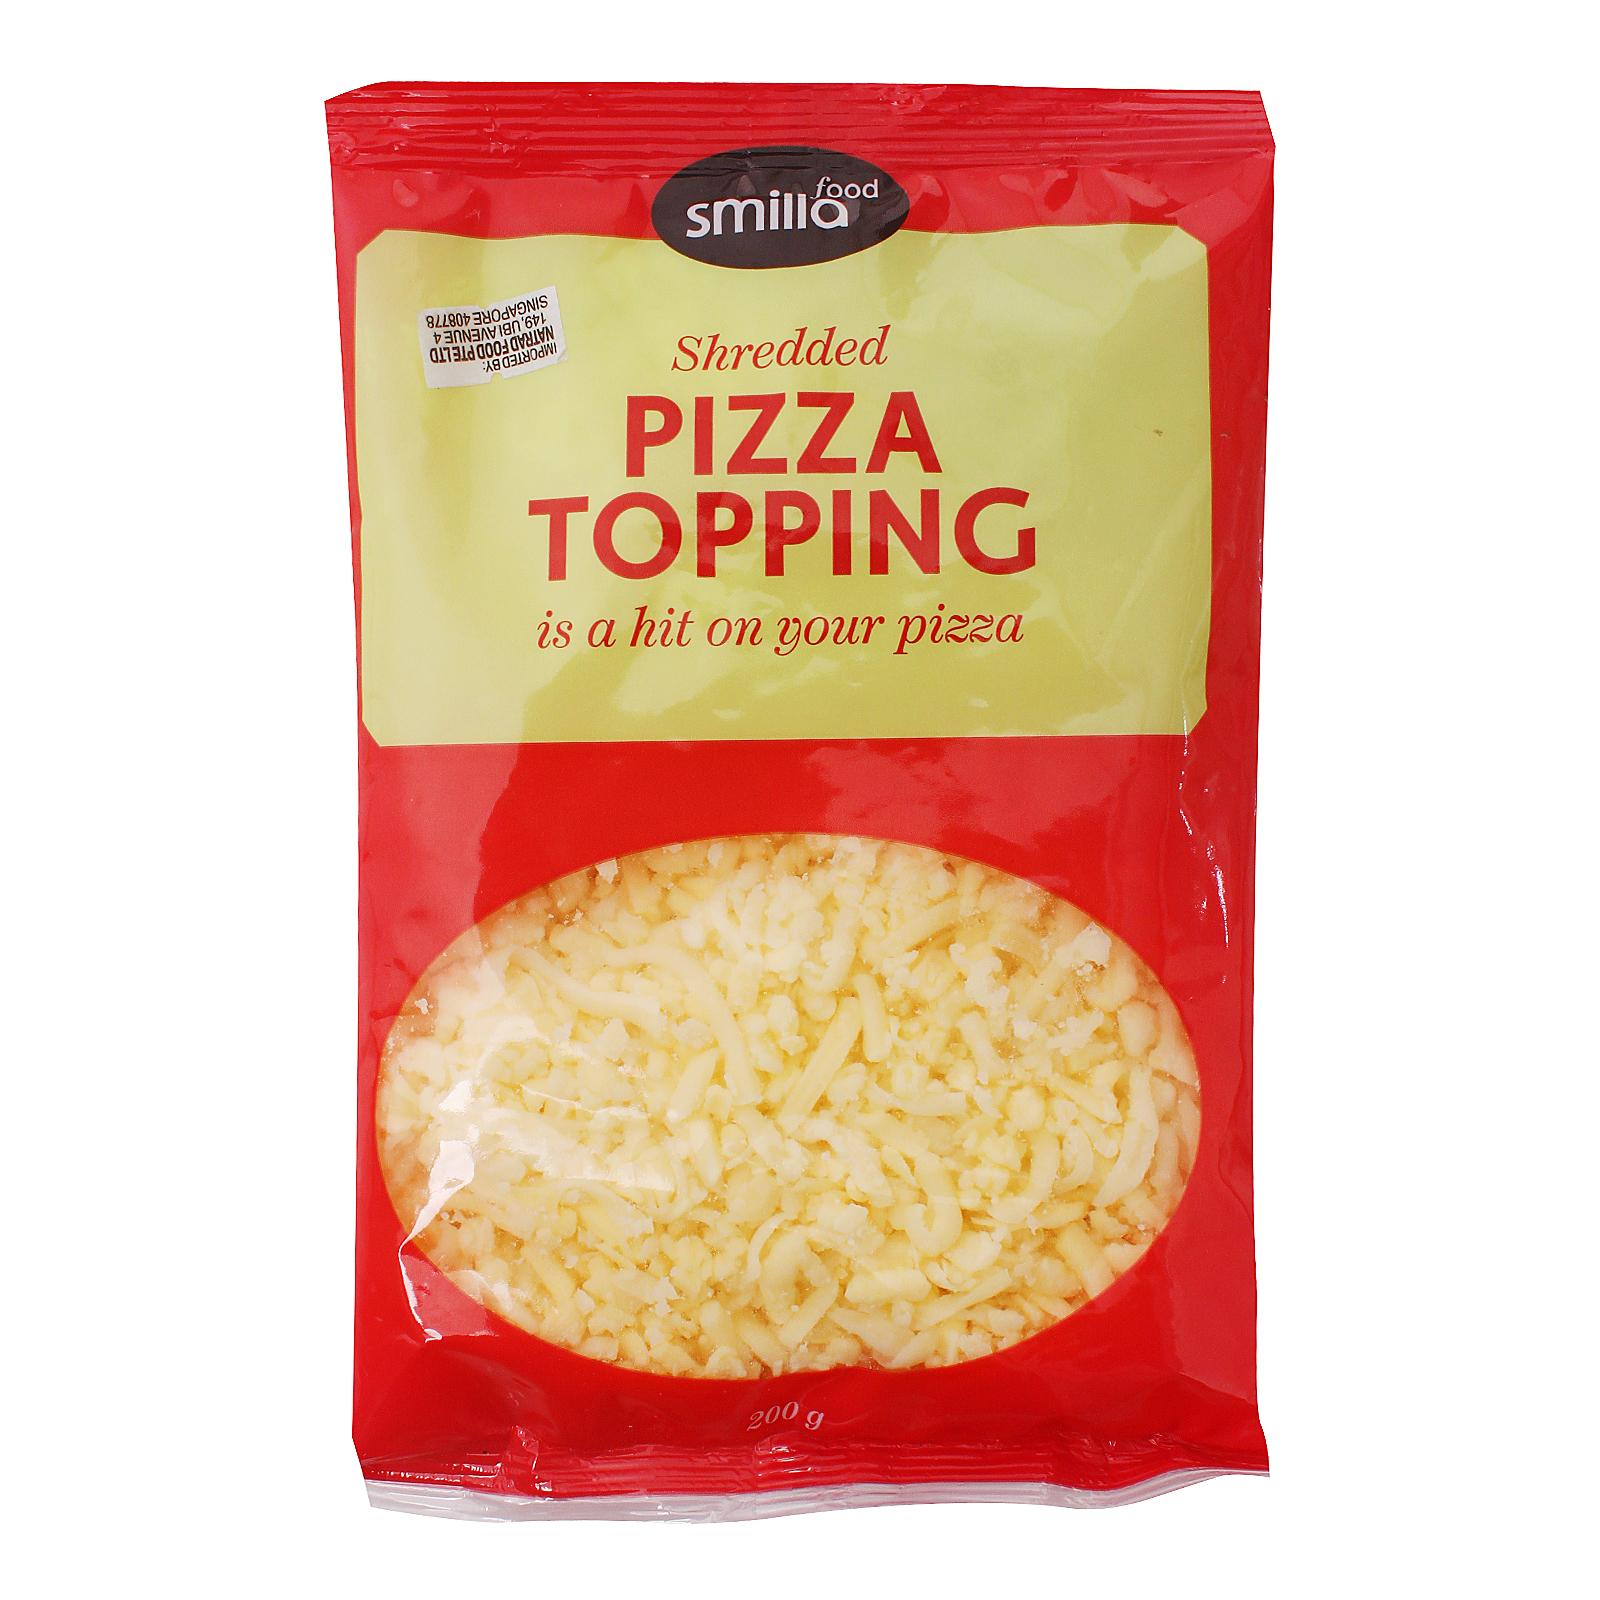 Smilla Pizza Topping Shredded Cheese